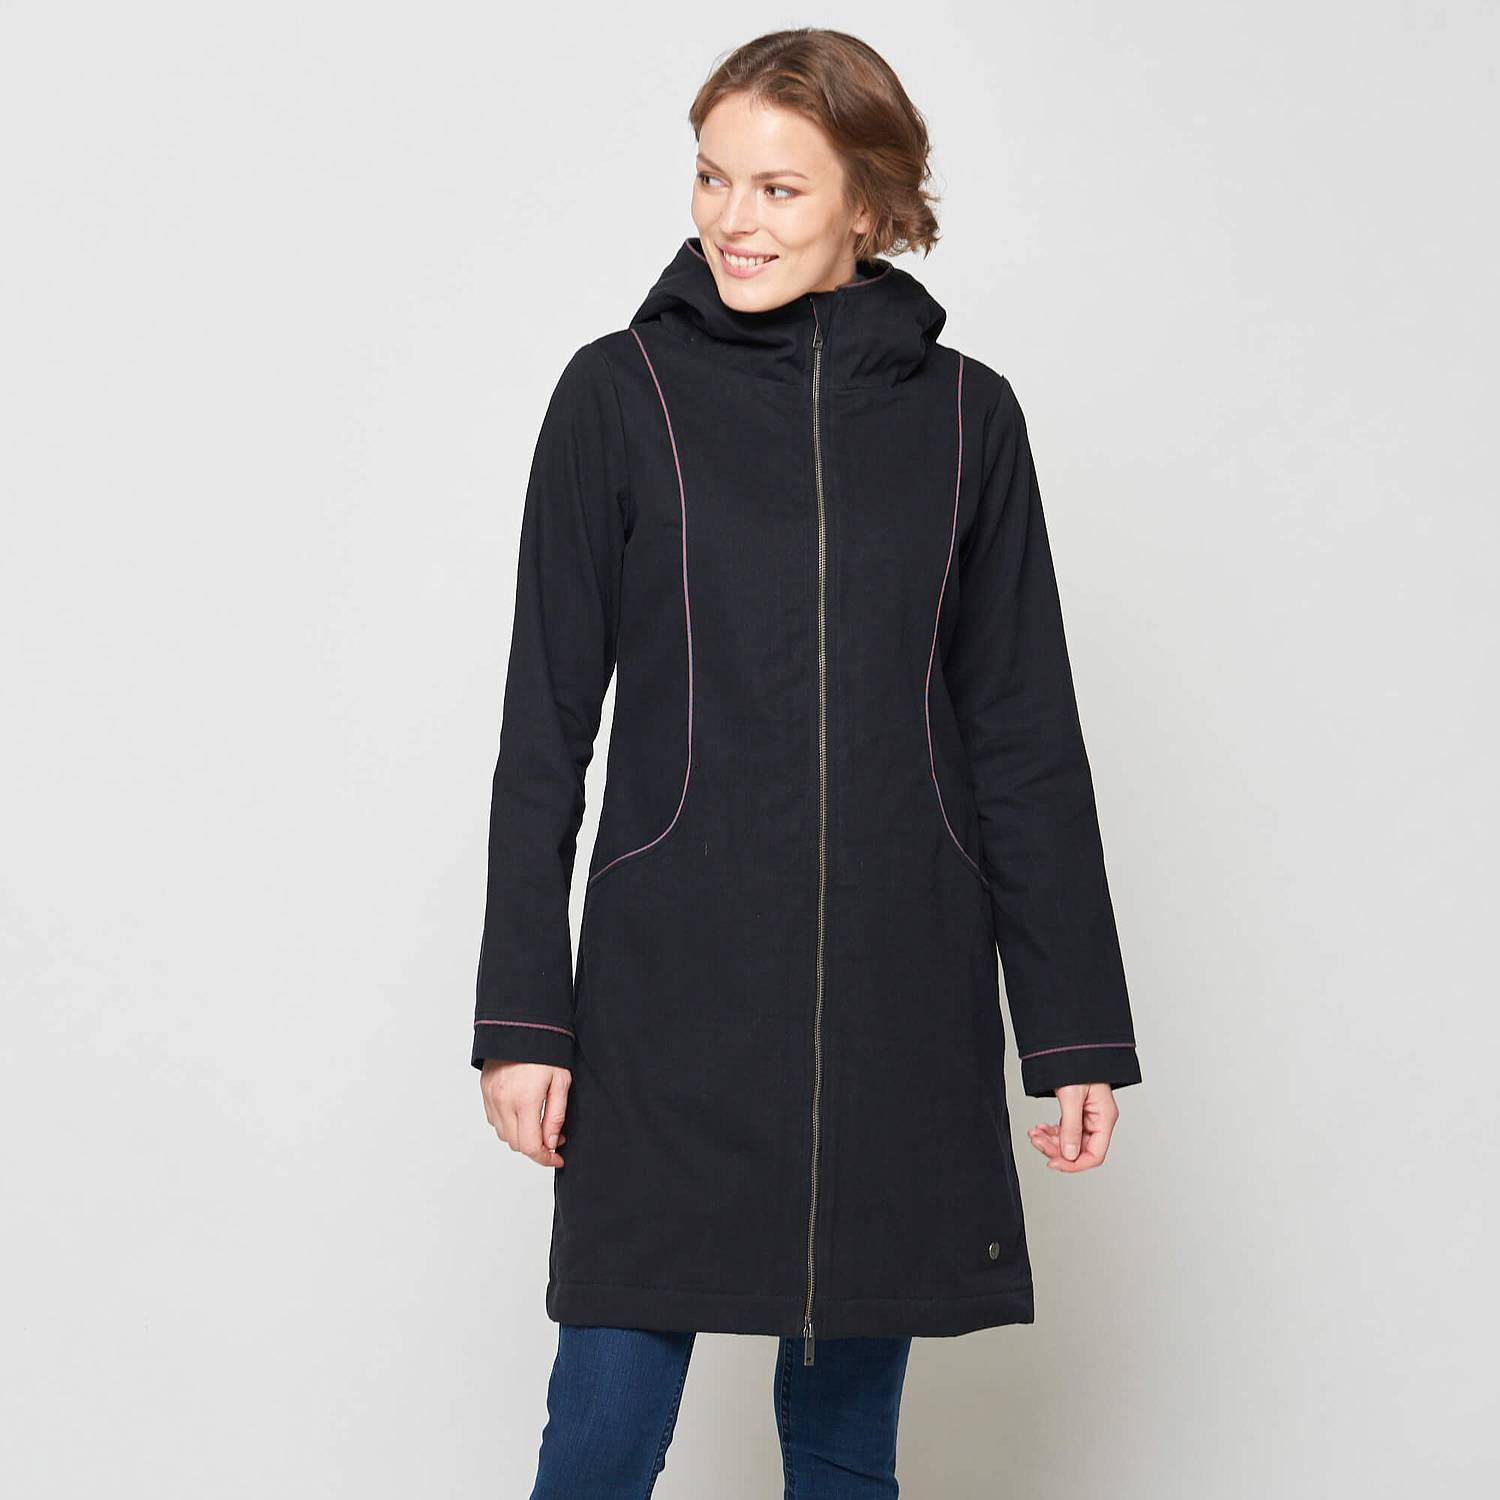 Coat  Phaet black